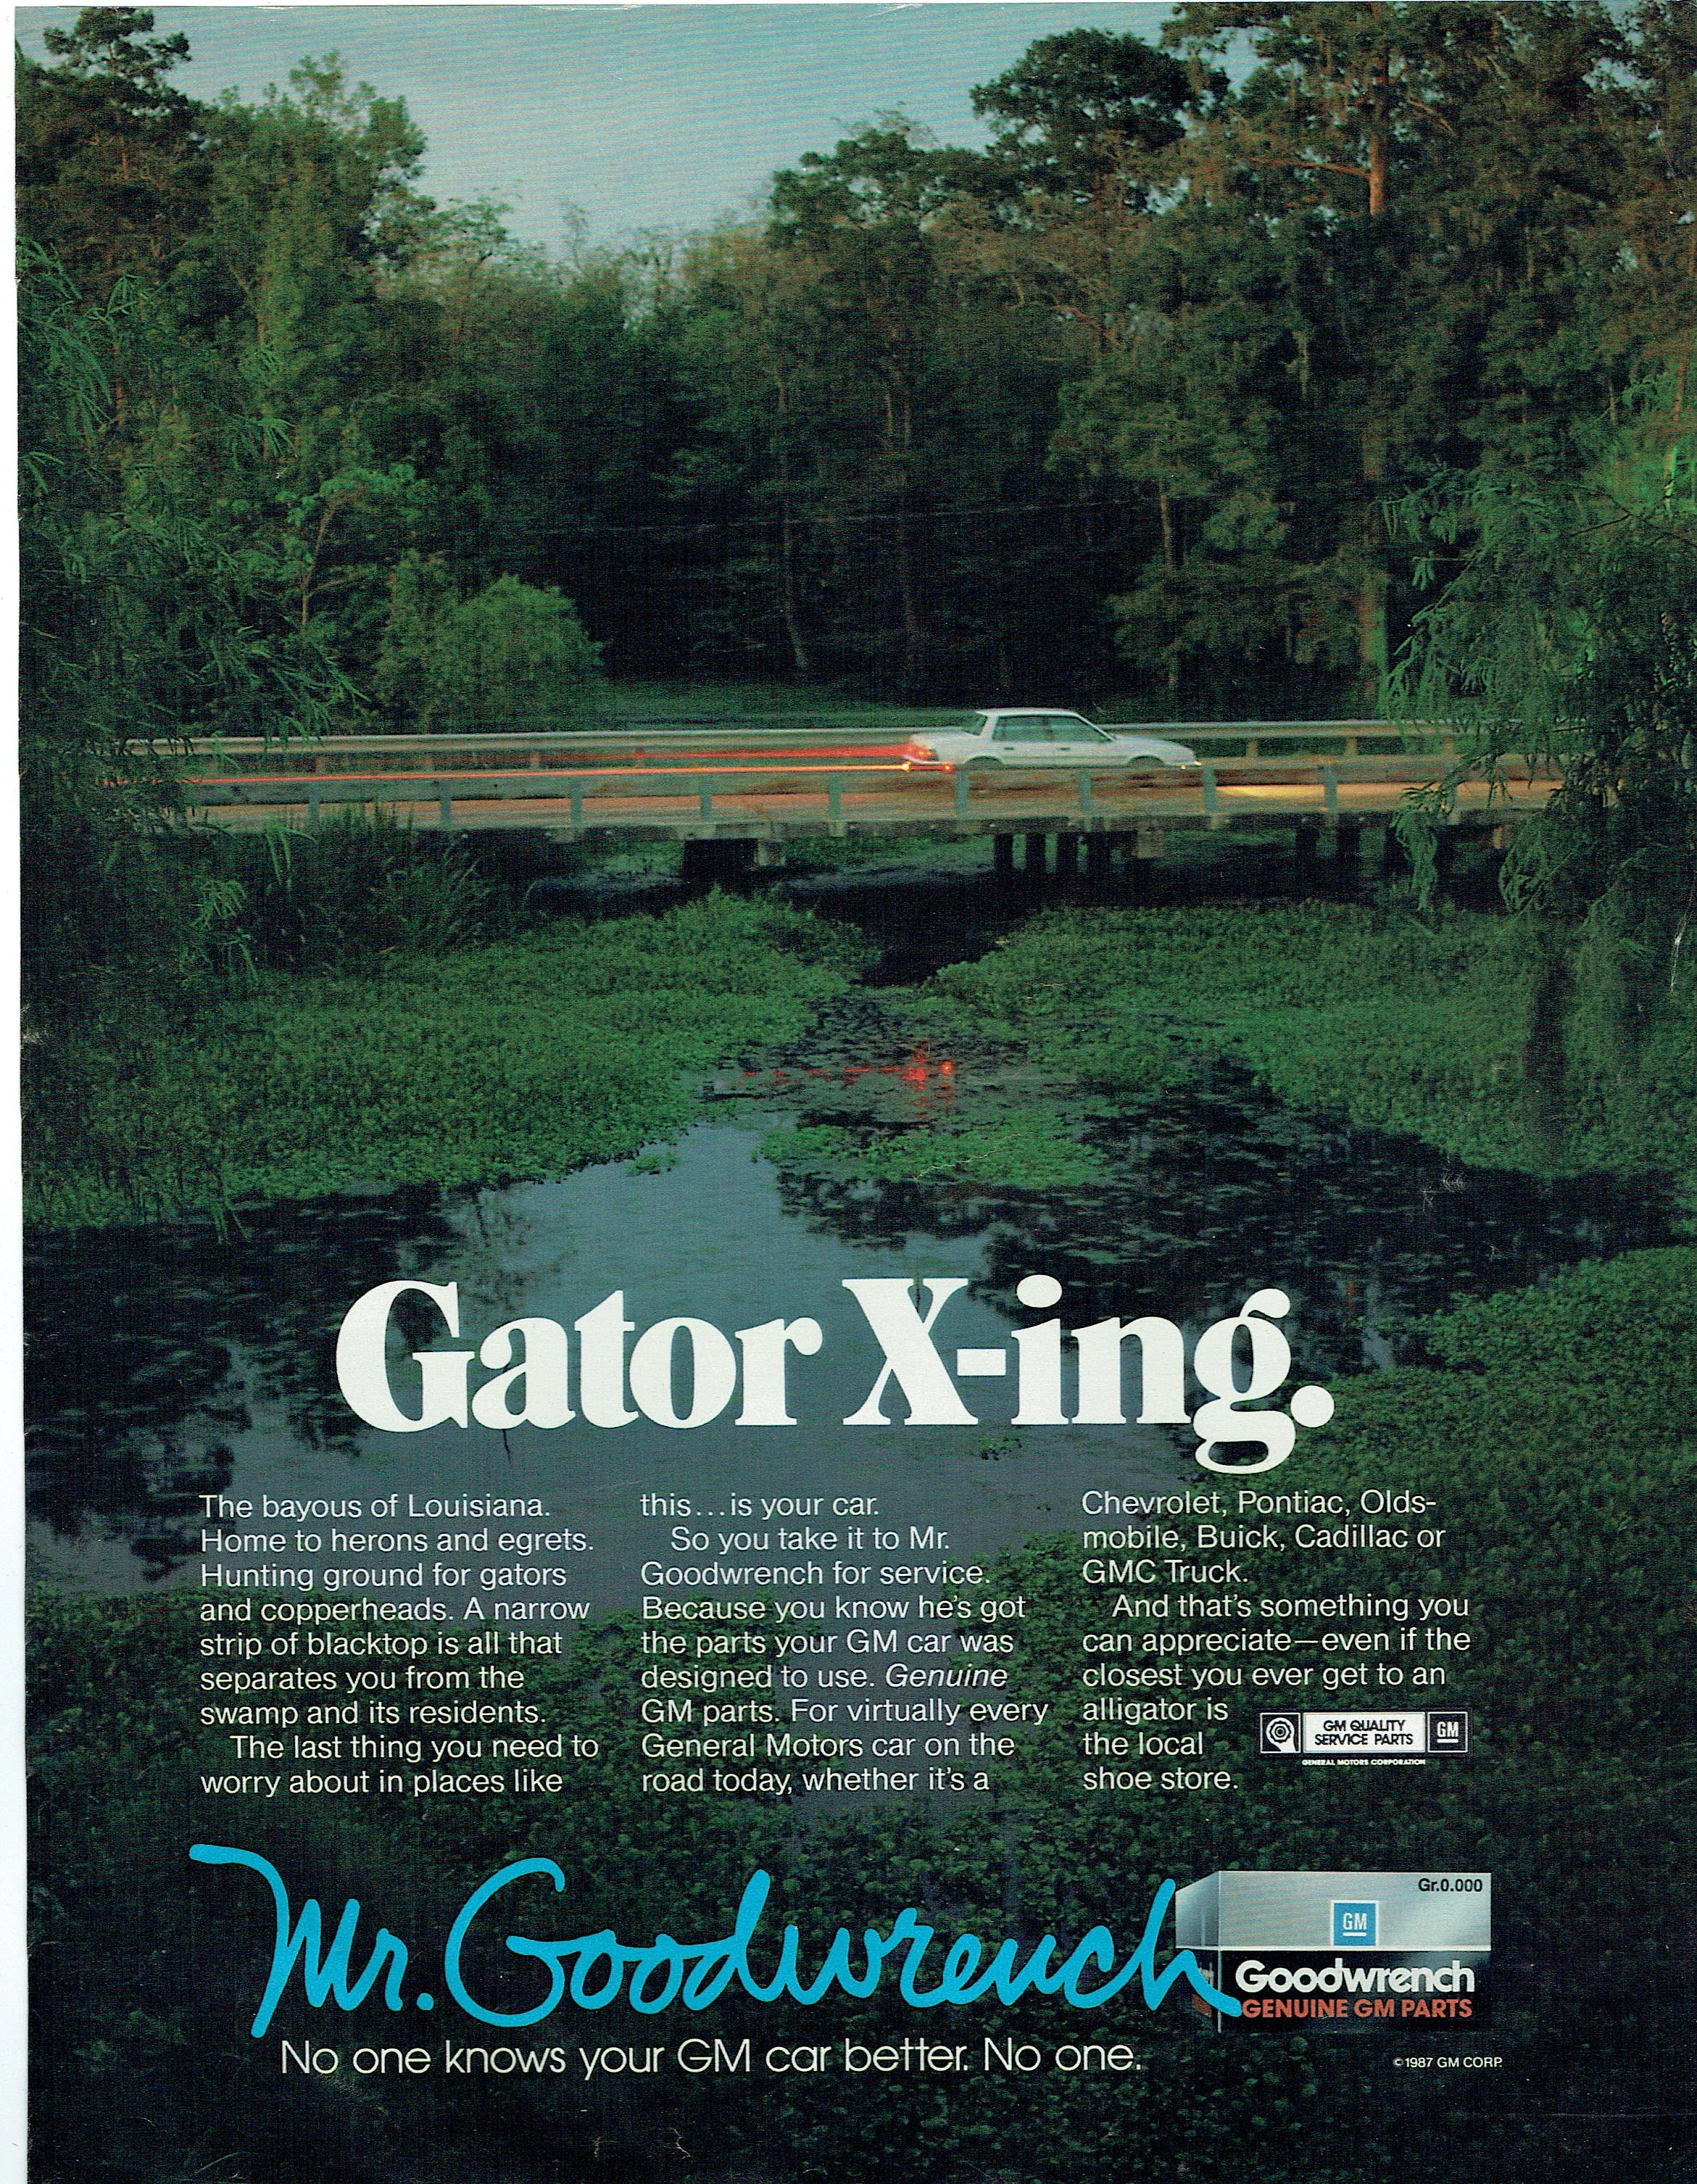 Gator Garage Pontiac Il 1988 Advertisement Mr Goodwrench Gm Mechanic Technician Tech Garage Gator Crossing Bayous Of Louisiana X Ing Us South Wall Art Decor